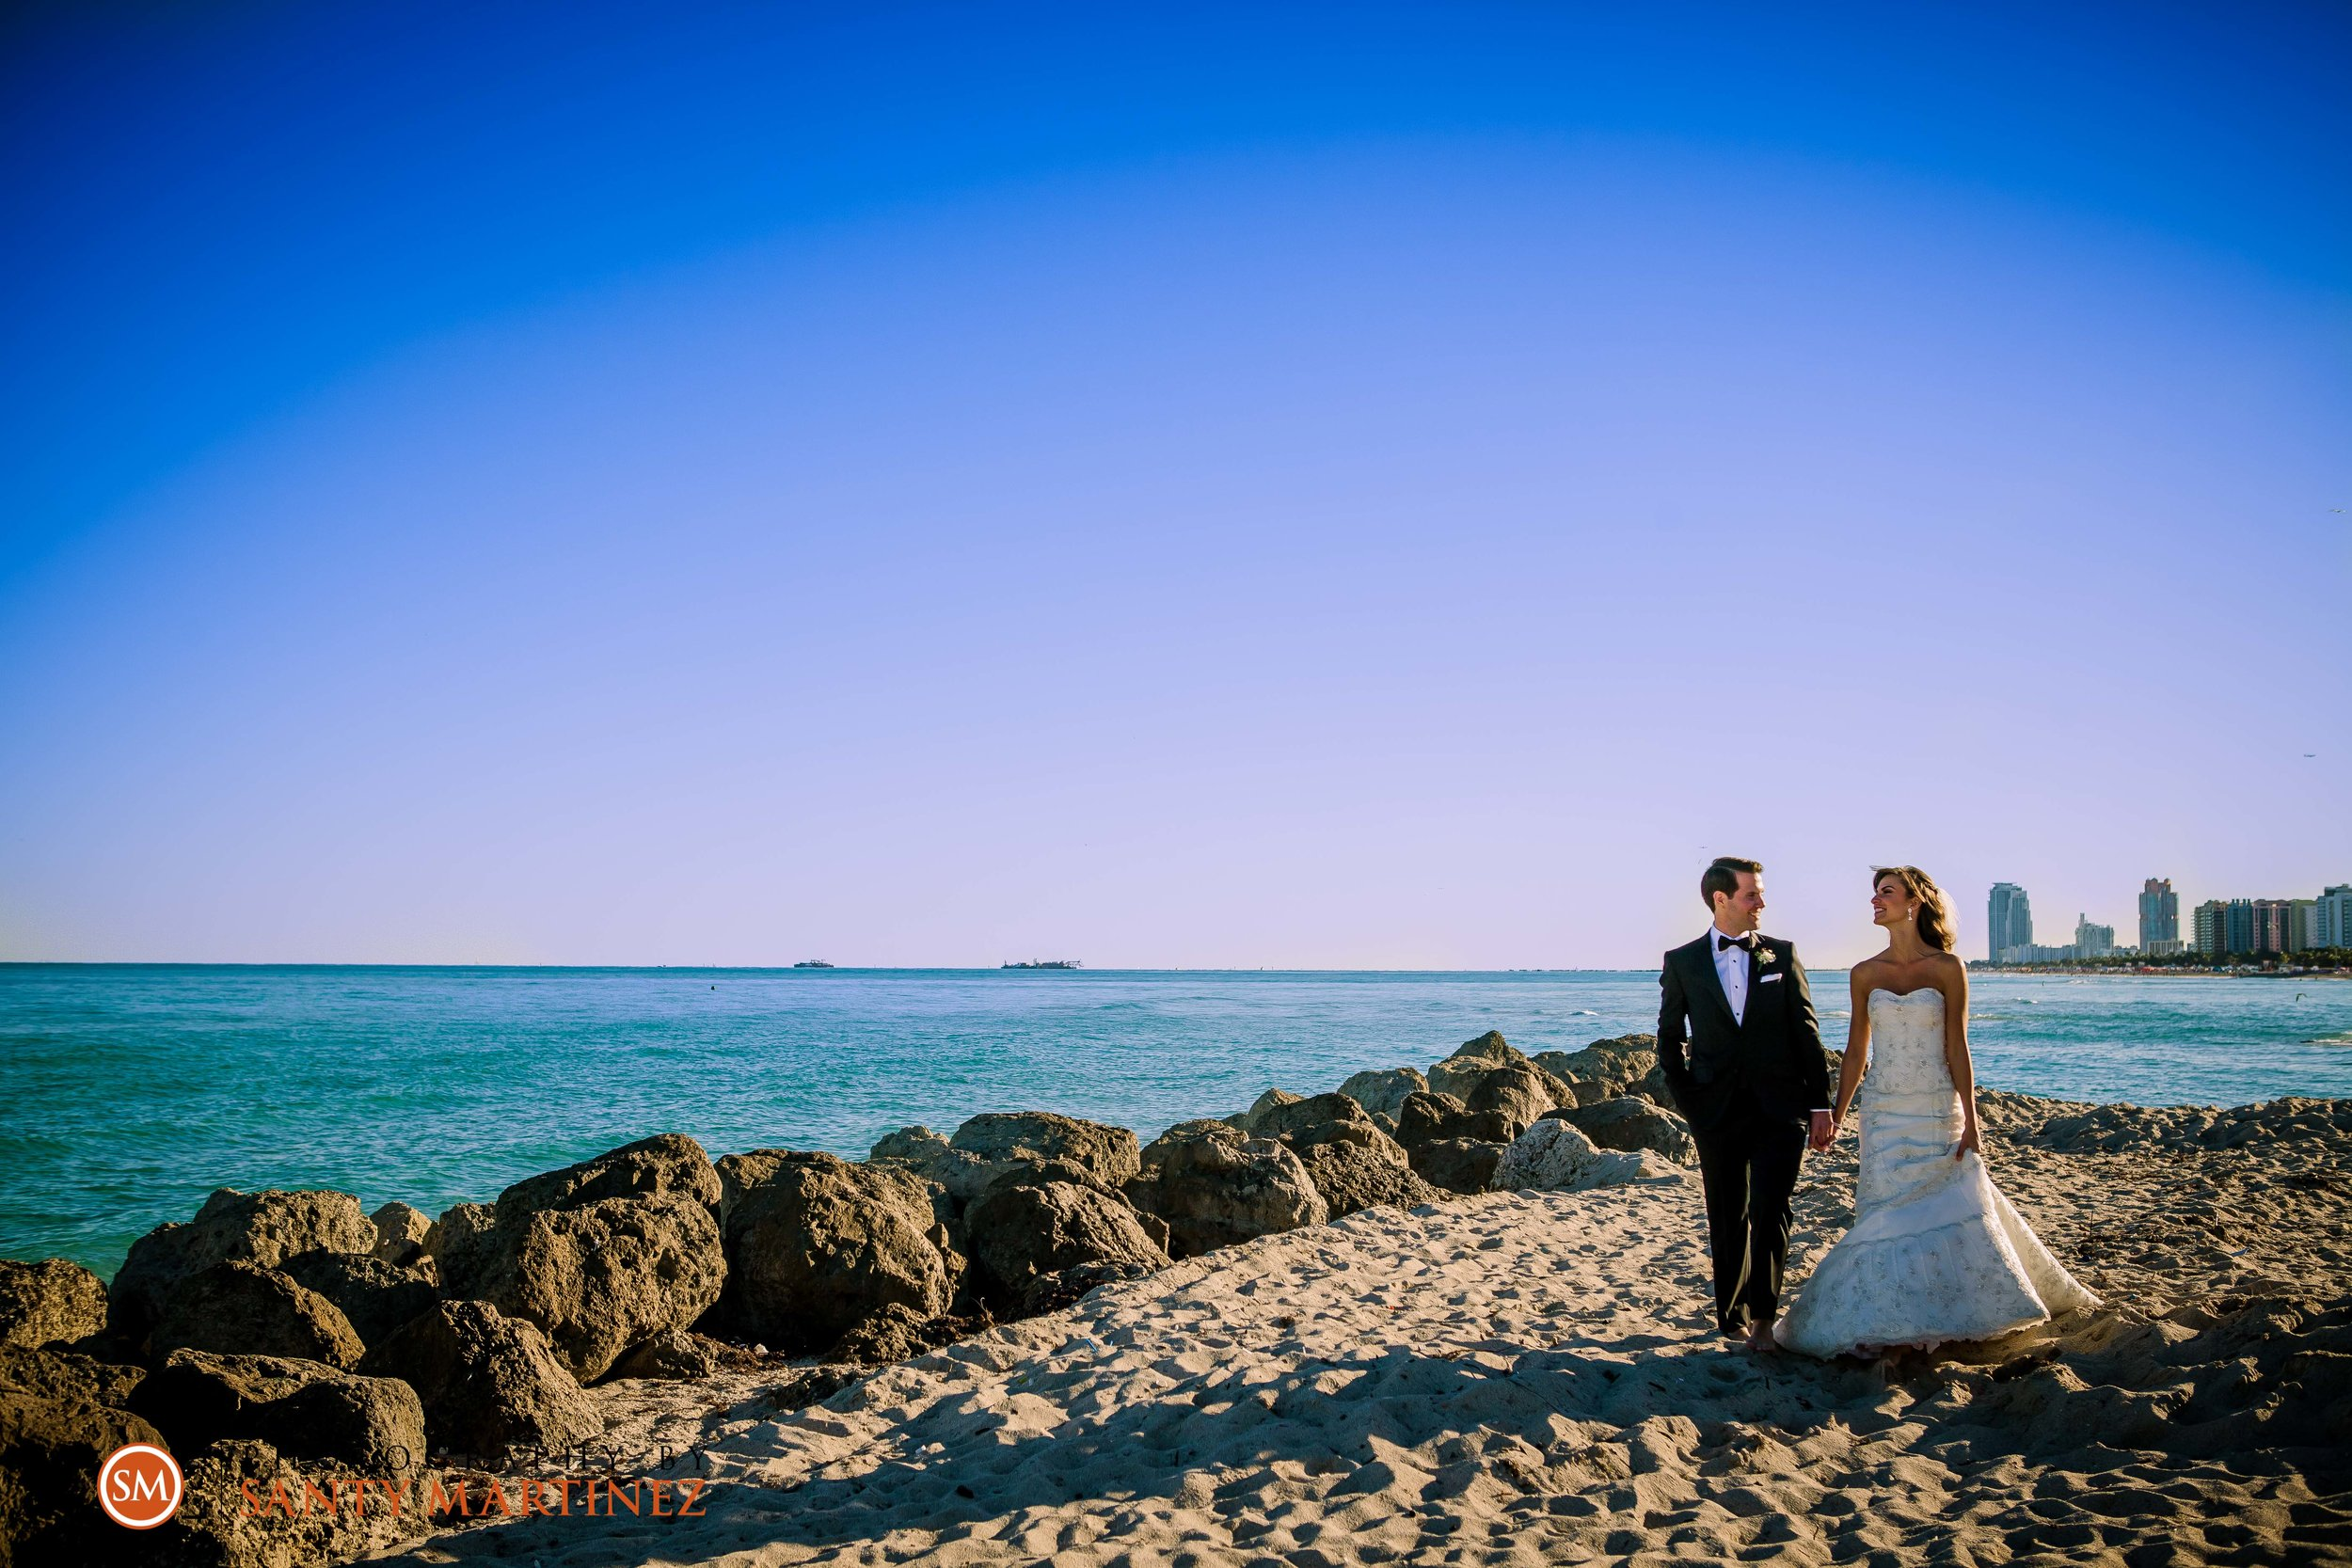 Miami Wedding Photographer - Santy Martinez -20.jpg